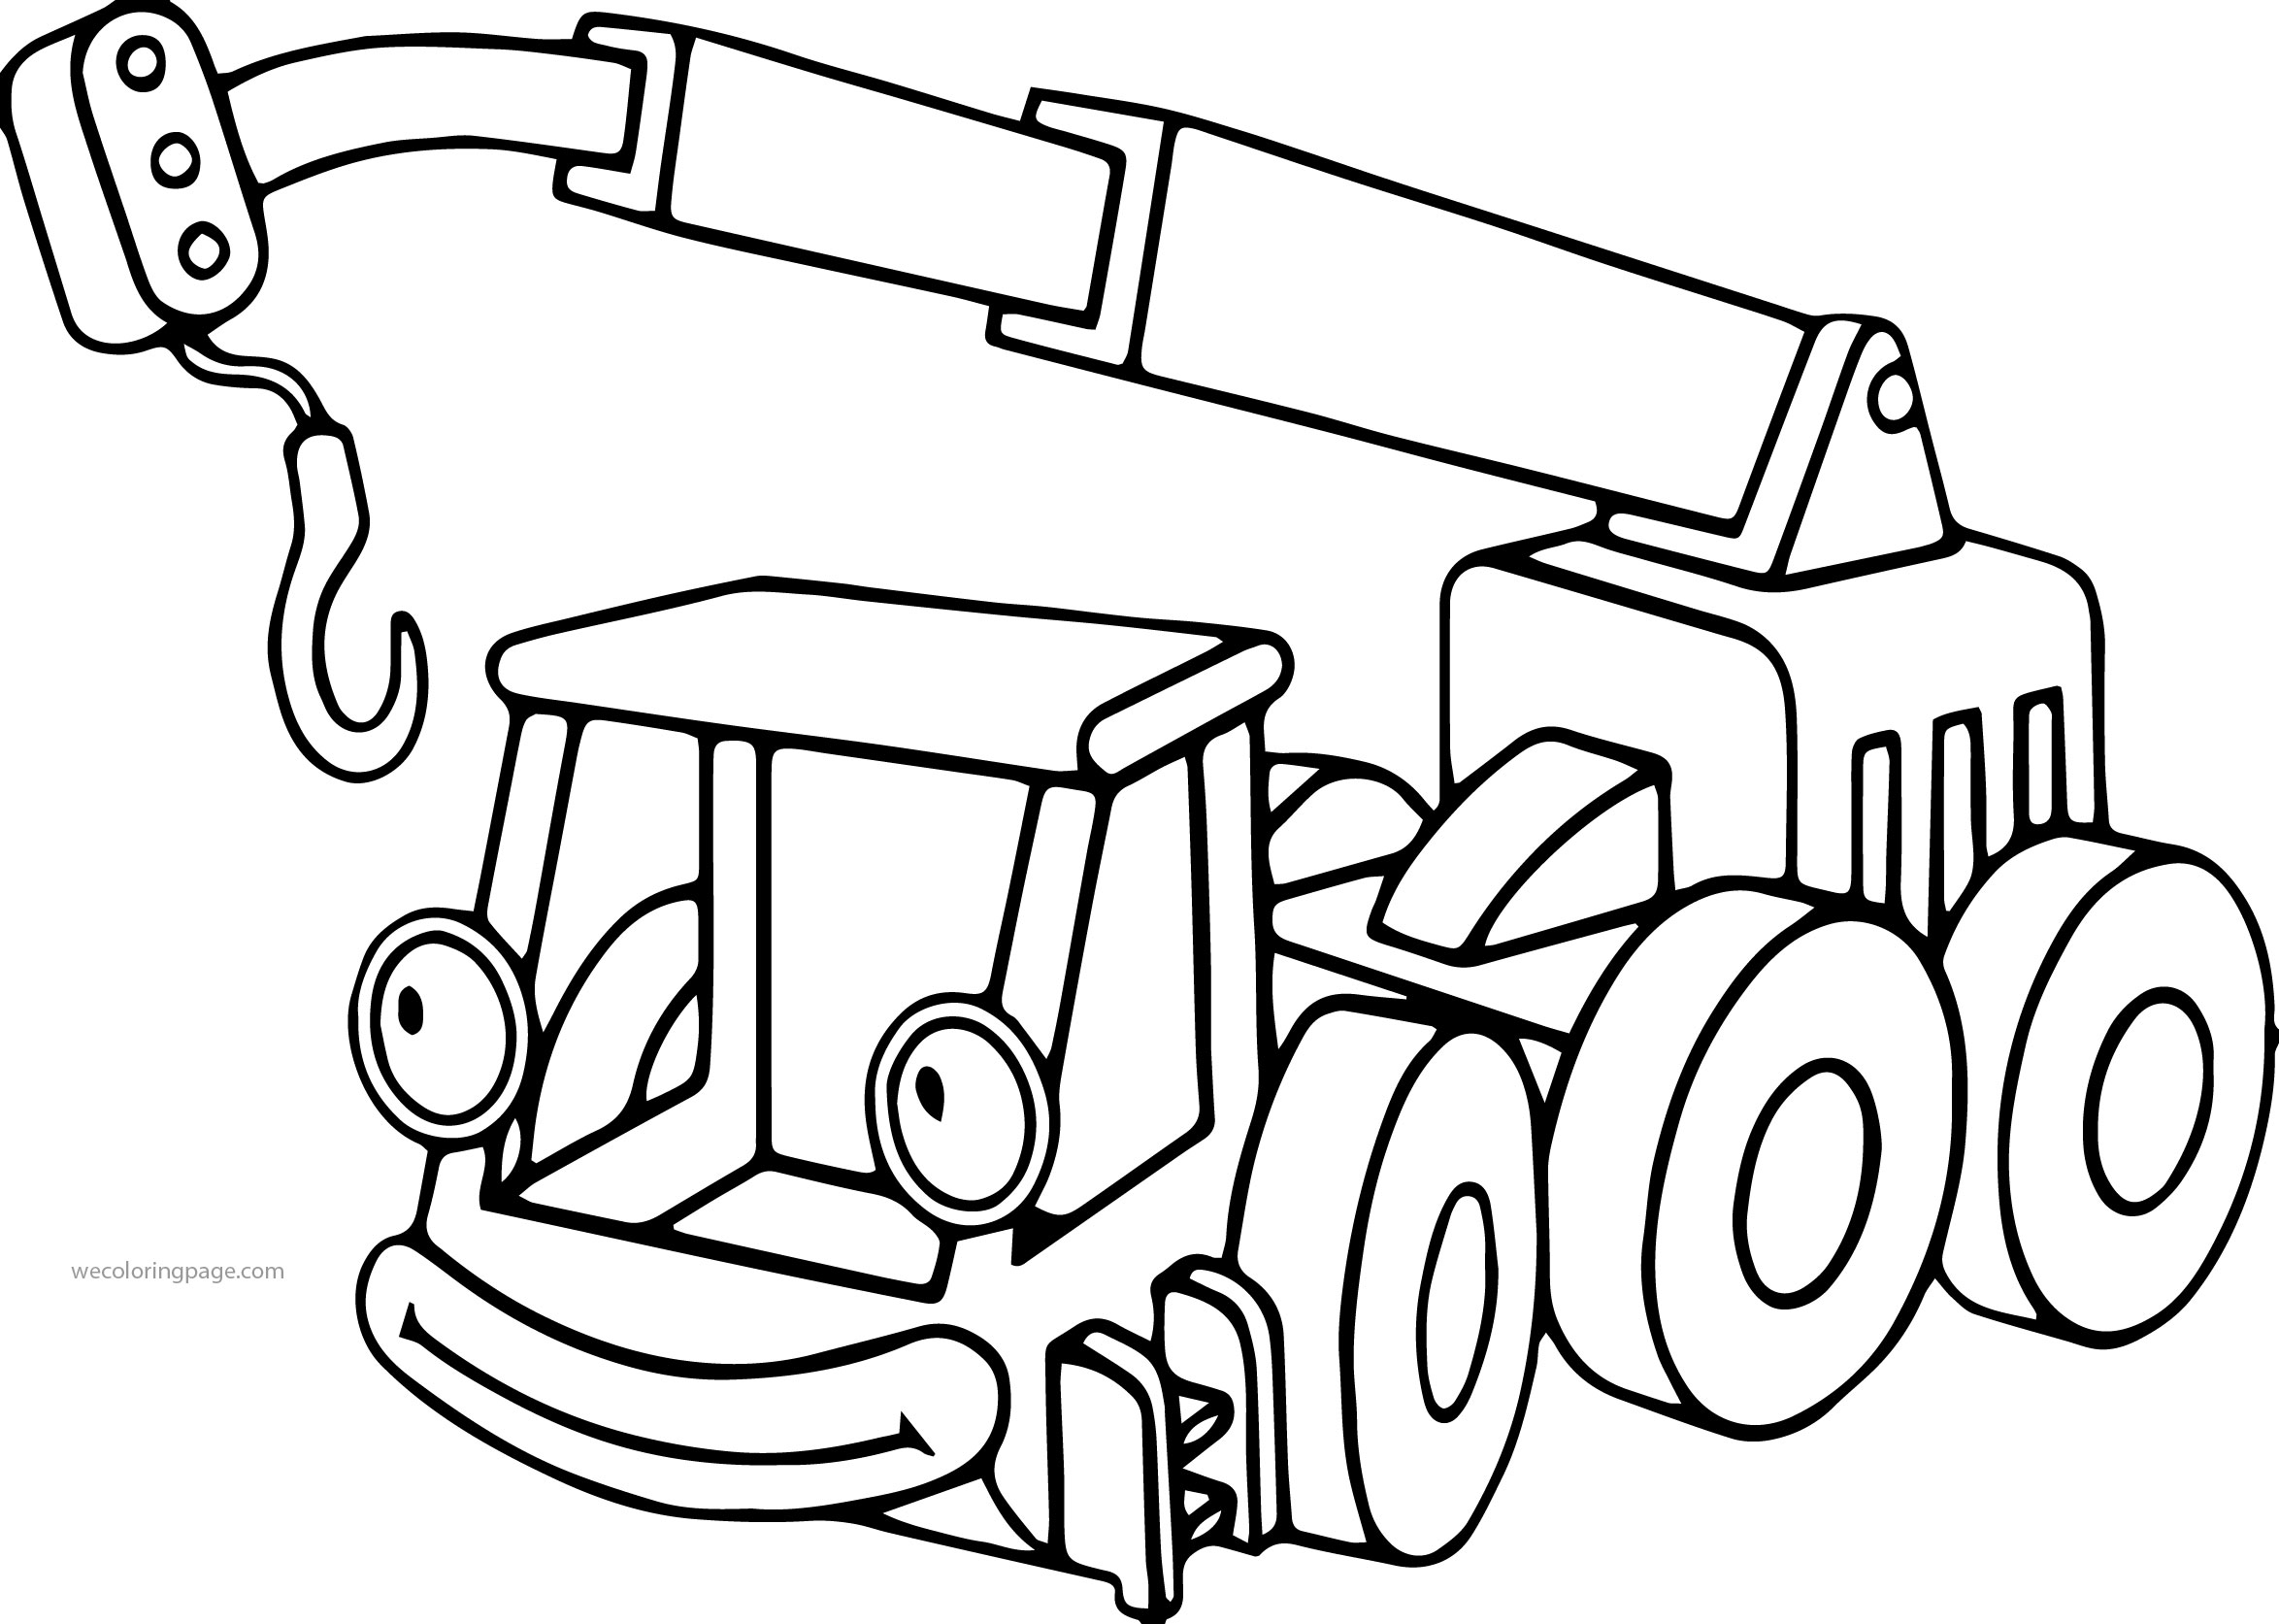 Spud And Lofty Coloring Page Auto Electrical Wiring Diagram Yihi Sx350 Series Battery Bob The Builder